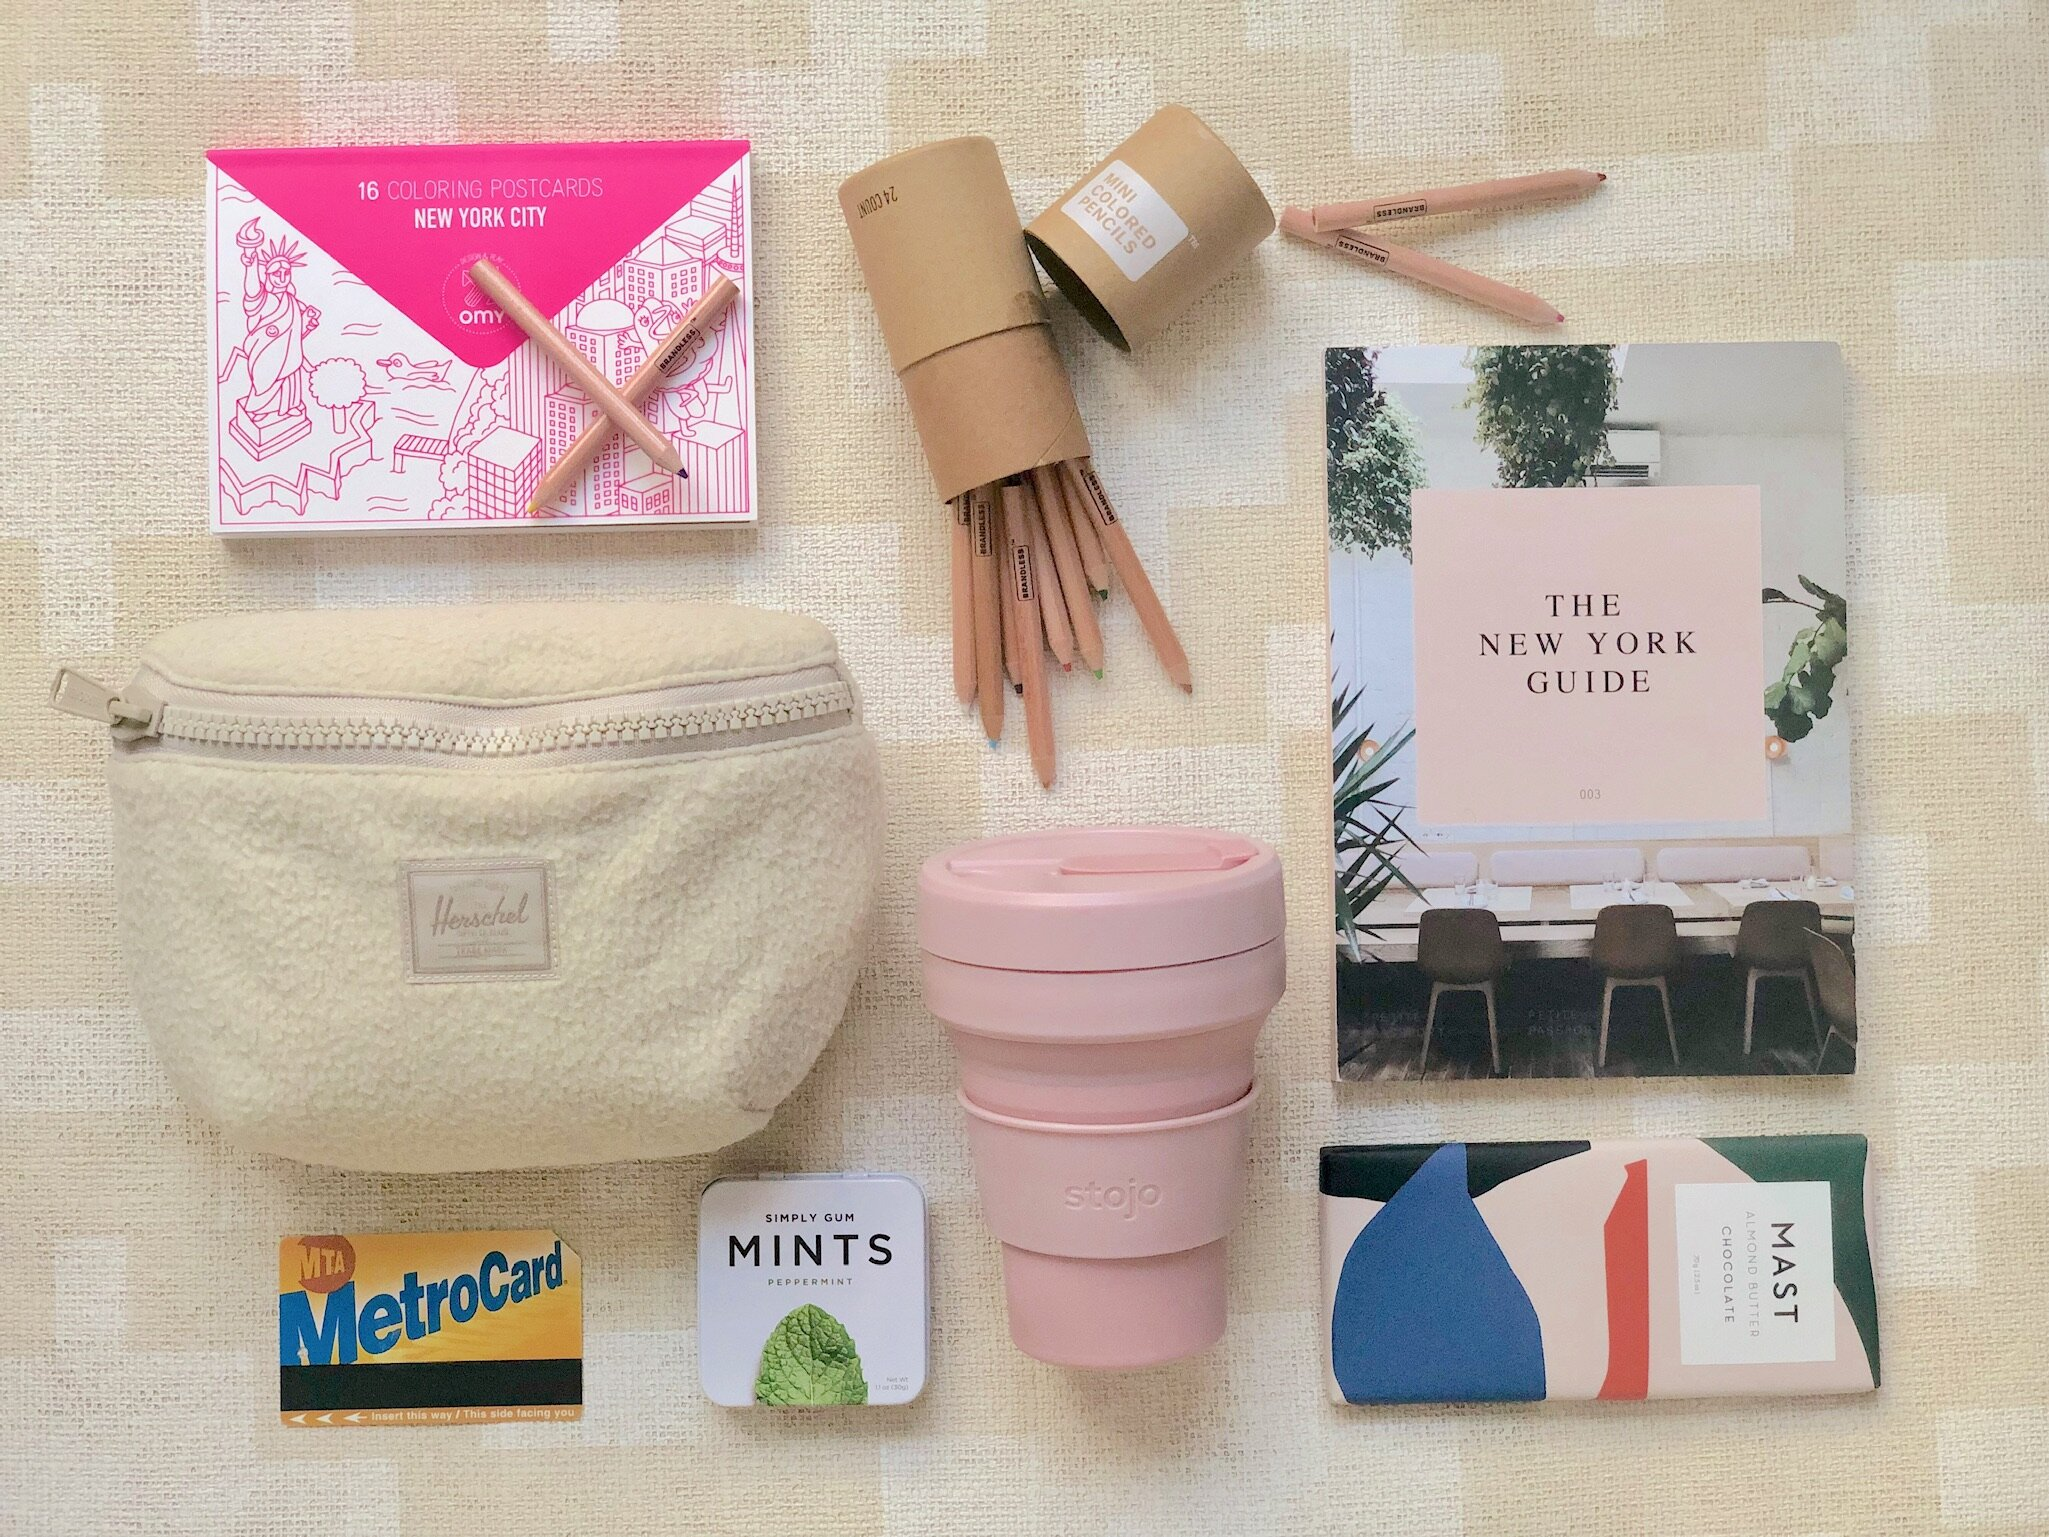 Herschel Supply Co. Fourteen Fanny Pack  ,   OMY New York Coloring Postcards   ,    Brandless Mini Colored Pencils   ,    Stojo 8oz Cup   ,    Petite Passport The New York Guide   ,    Mast Chocolate Bar   ,    Simply Gum Mints   , NYC Metro Card